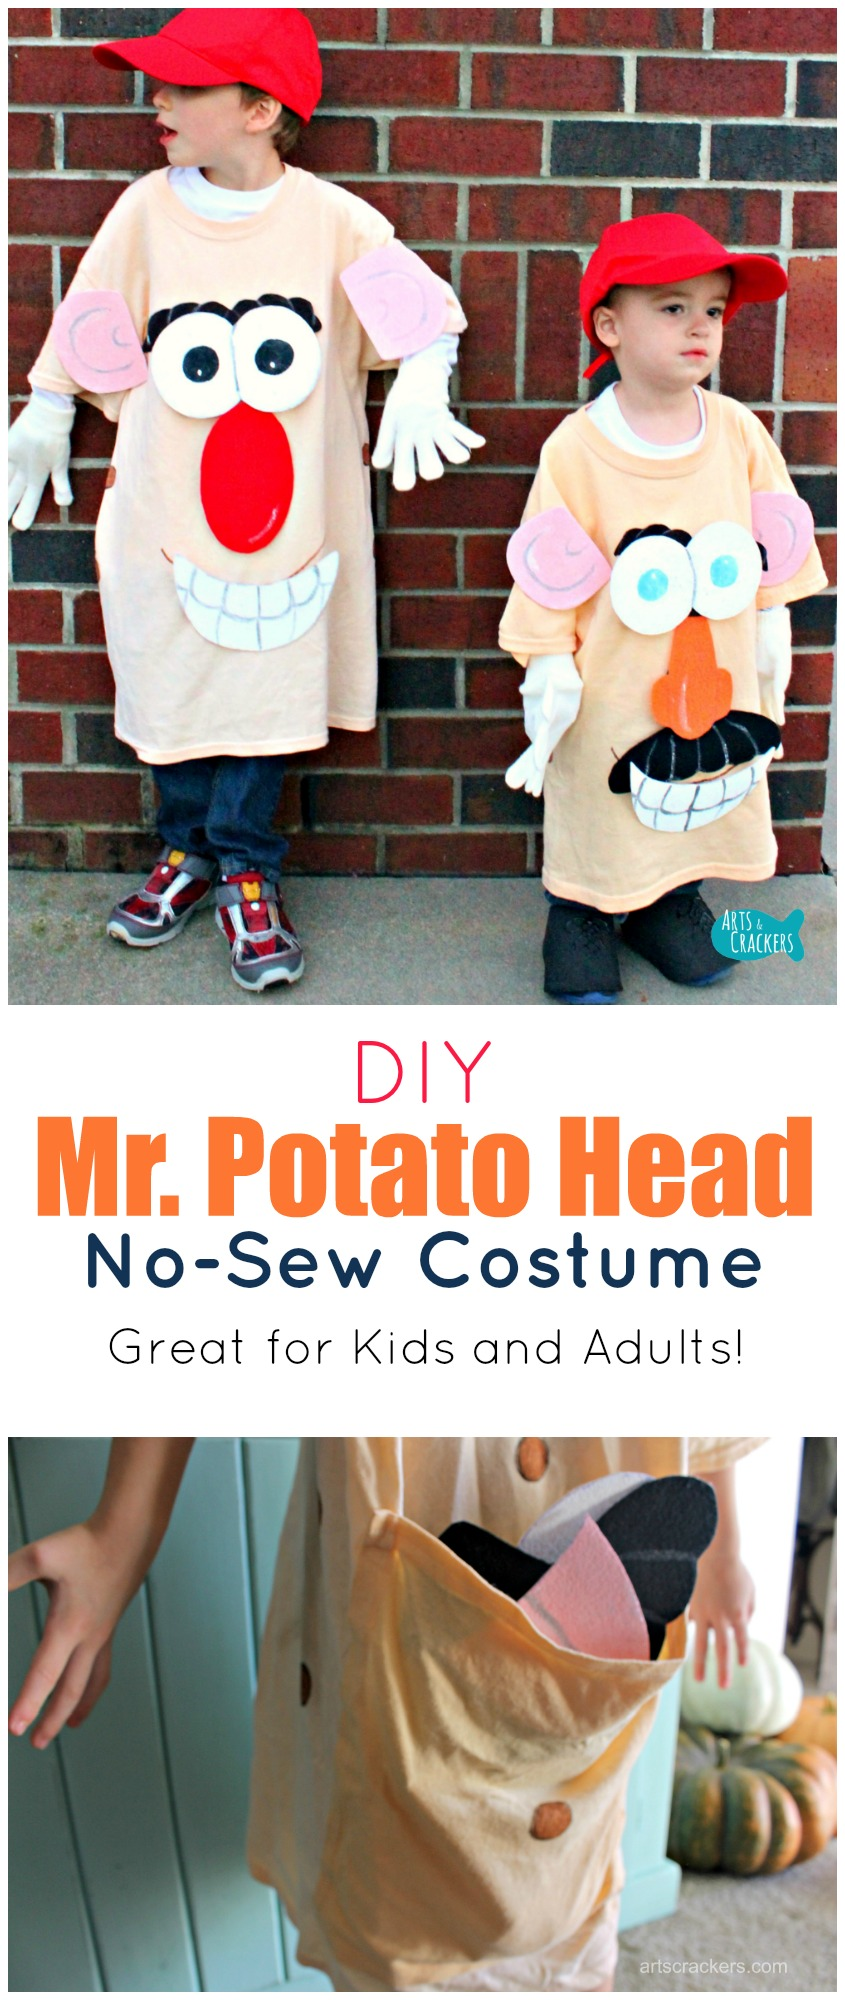 Diy No Sew Mr Potato Head Costume For Kids And Adults